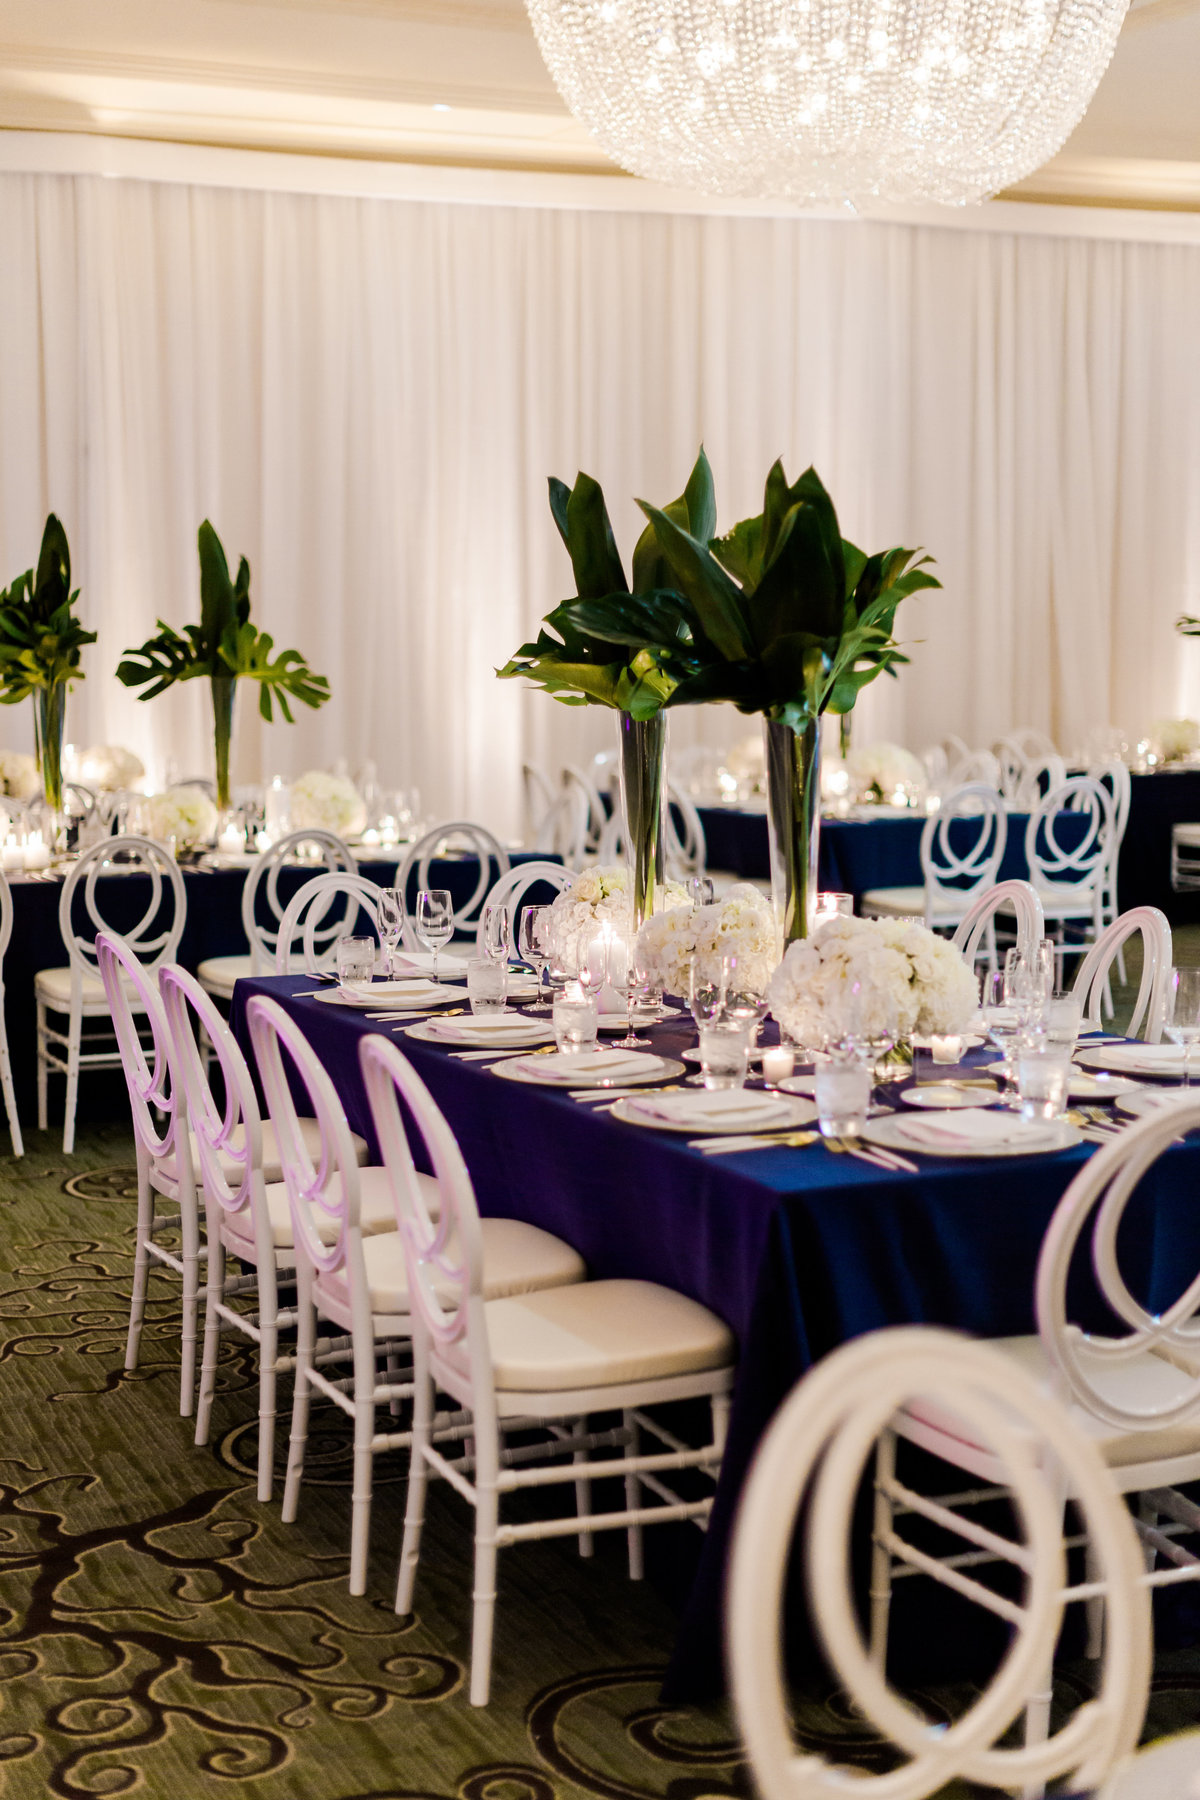 Tropical_Modern_Fairmont_Santa_Monica_Navy_Pink_Wedding_Valorie_Darling_Photography - 107 of 146